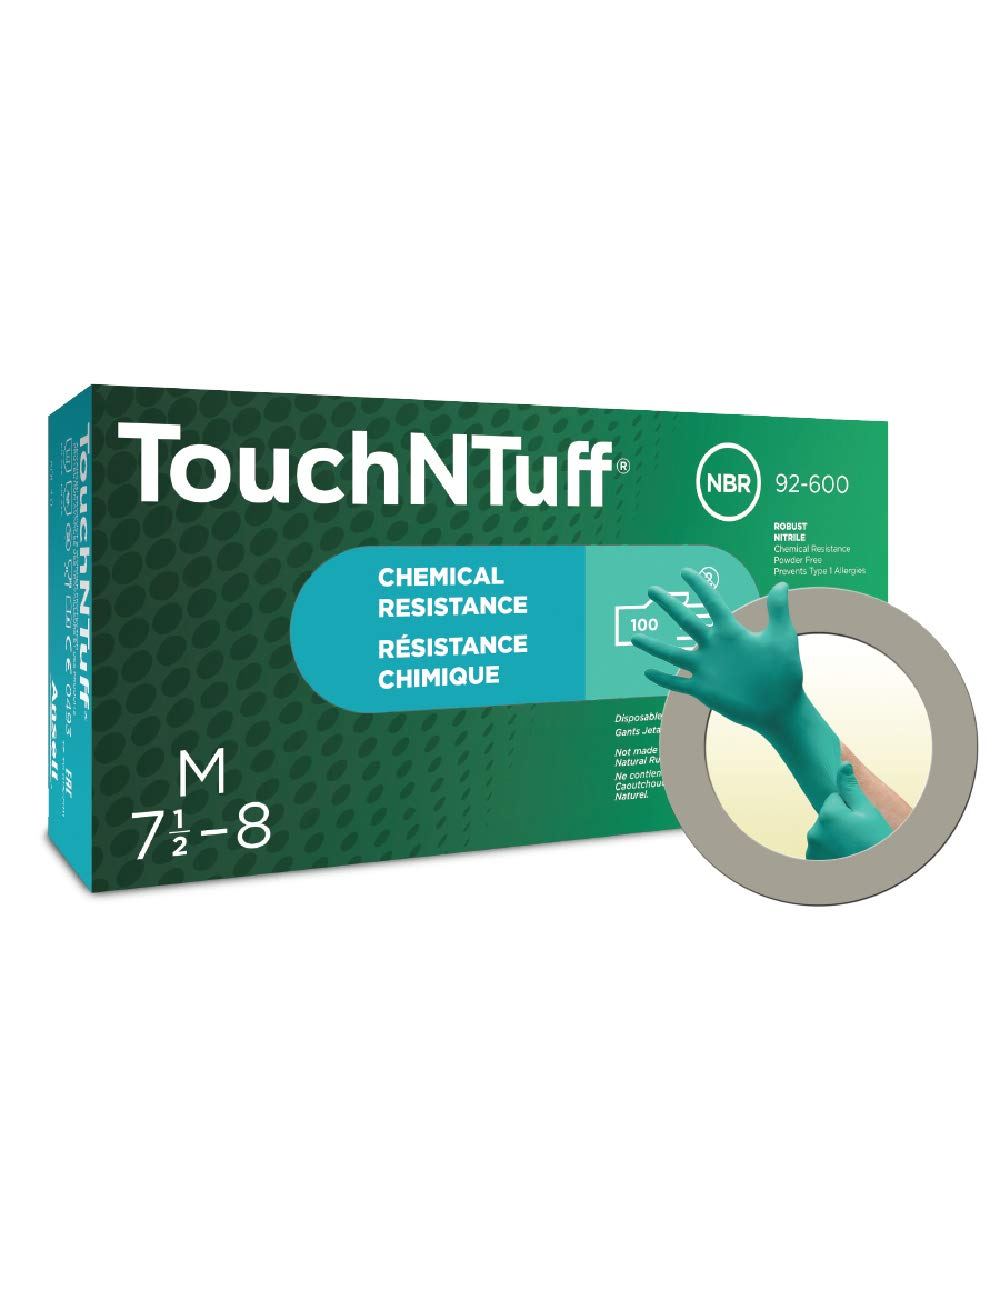 Ansell TouchNTuff 92-600 Nitrile Lightweight Glove with Beaded Cuff, Chemical/Splash Resistance, Powder Free, 4.7mil Thickness, 240mm Length, Size 8, Green (Box of 100) by Ansell (Image #3)